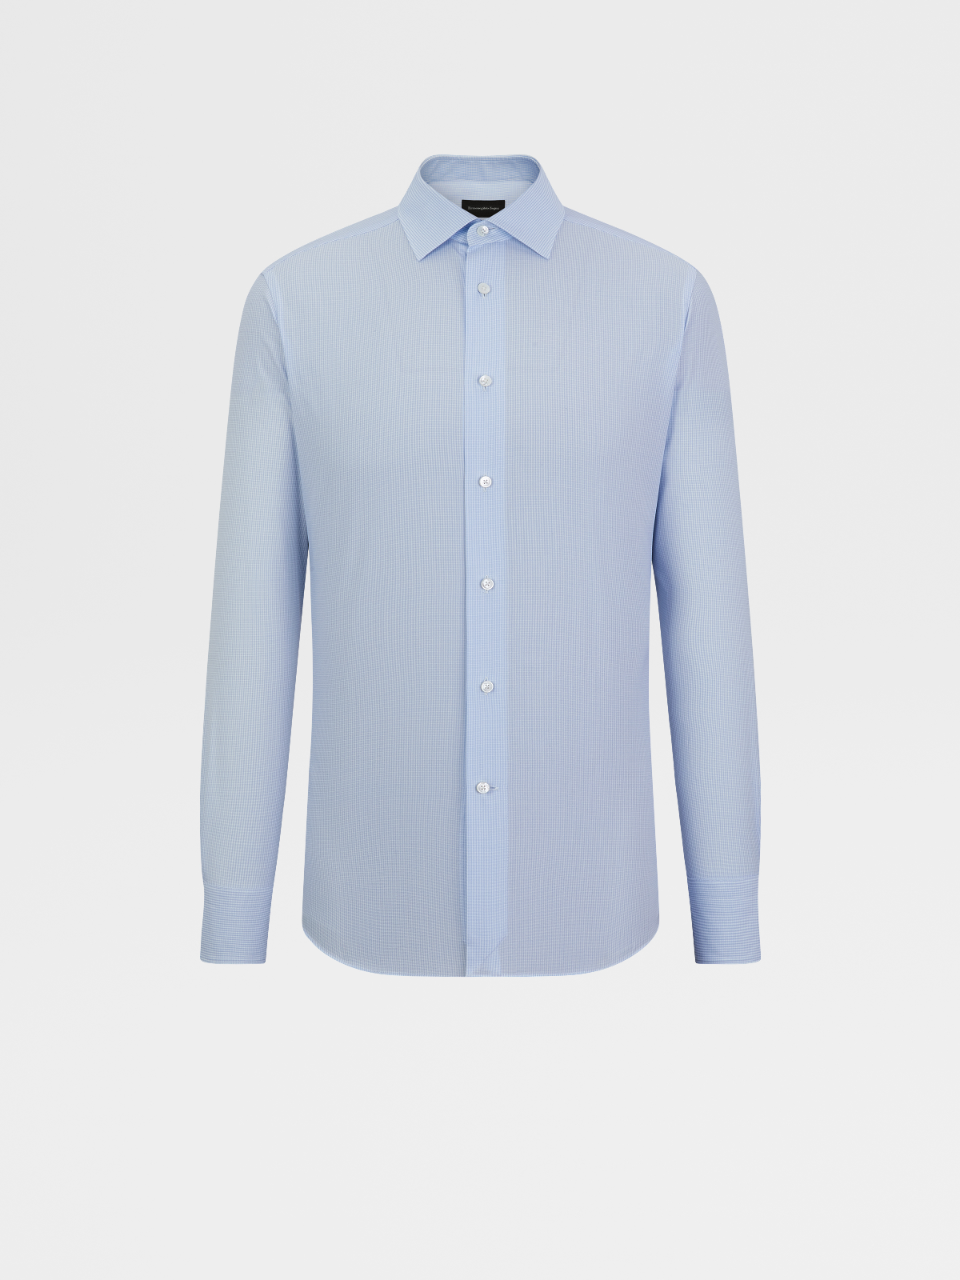 Trofeo Cotton Shirt